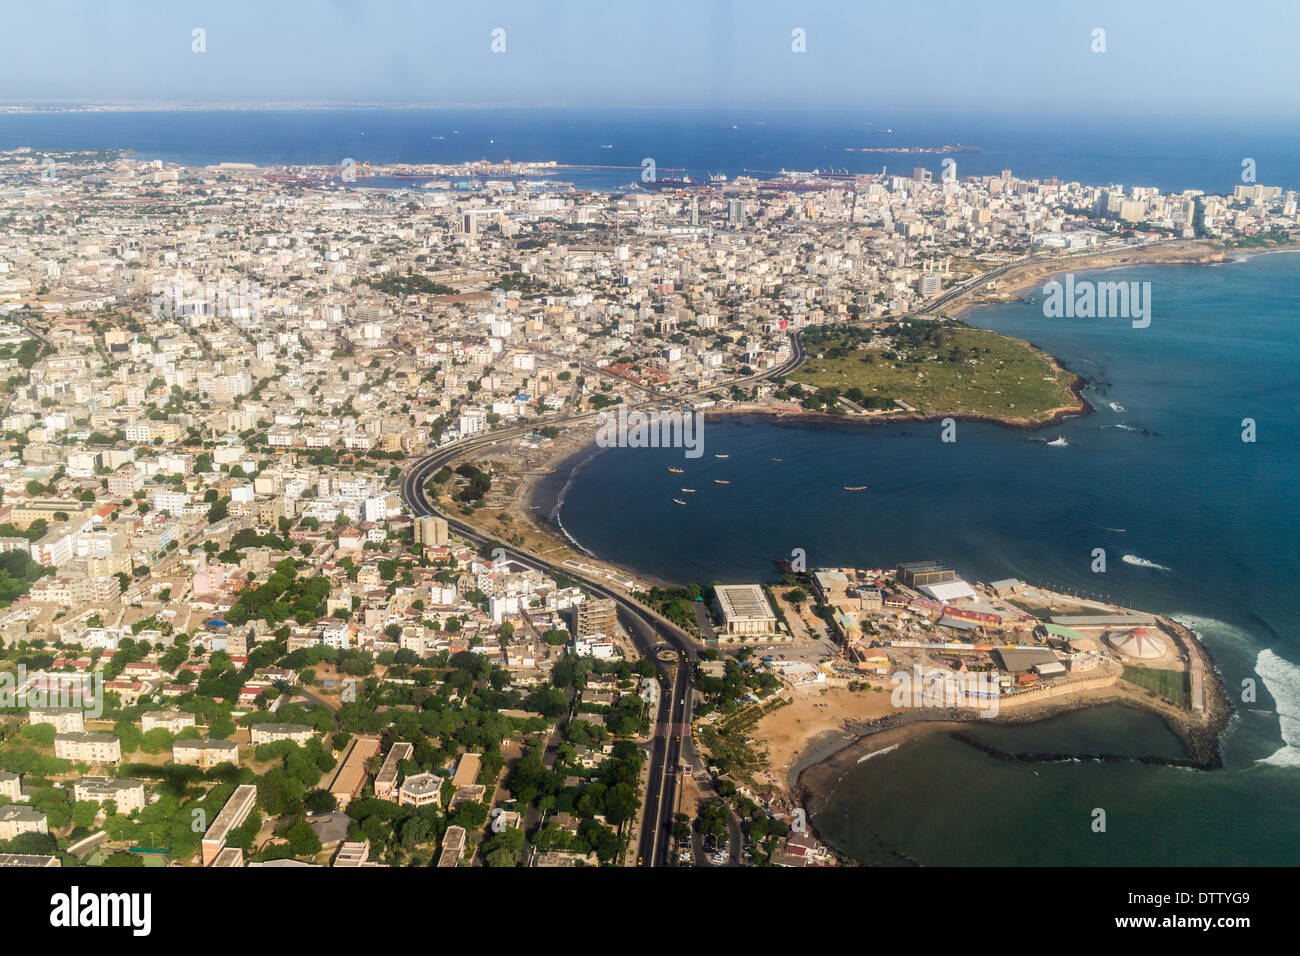 Aerial view of the city of Dakar, Senegal, by the coast of the Atlantic city - Stock Image